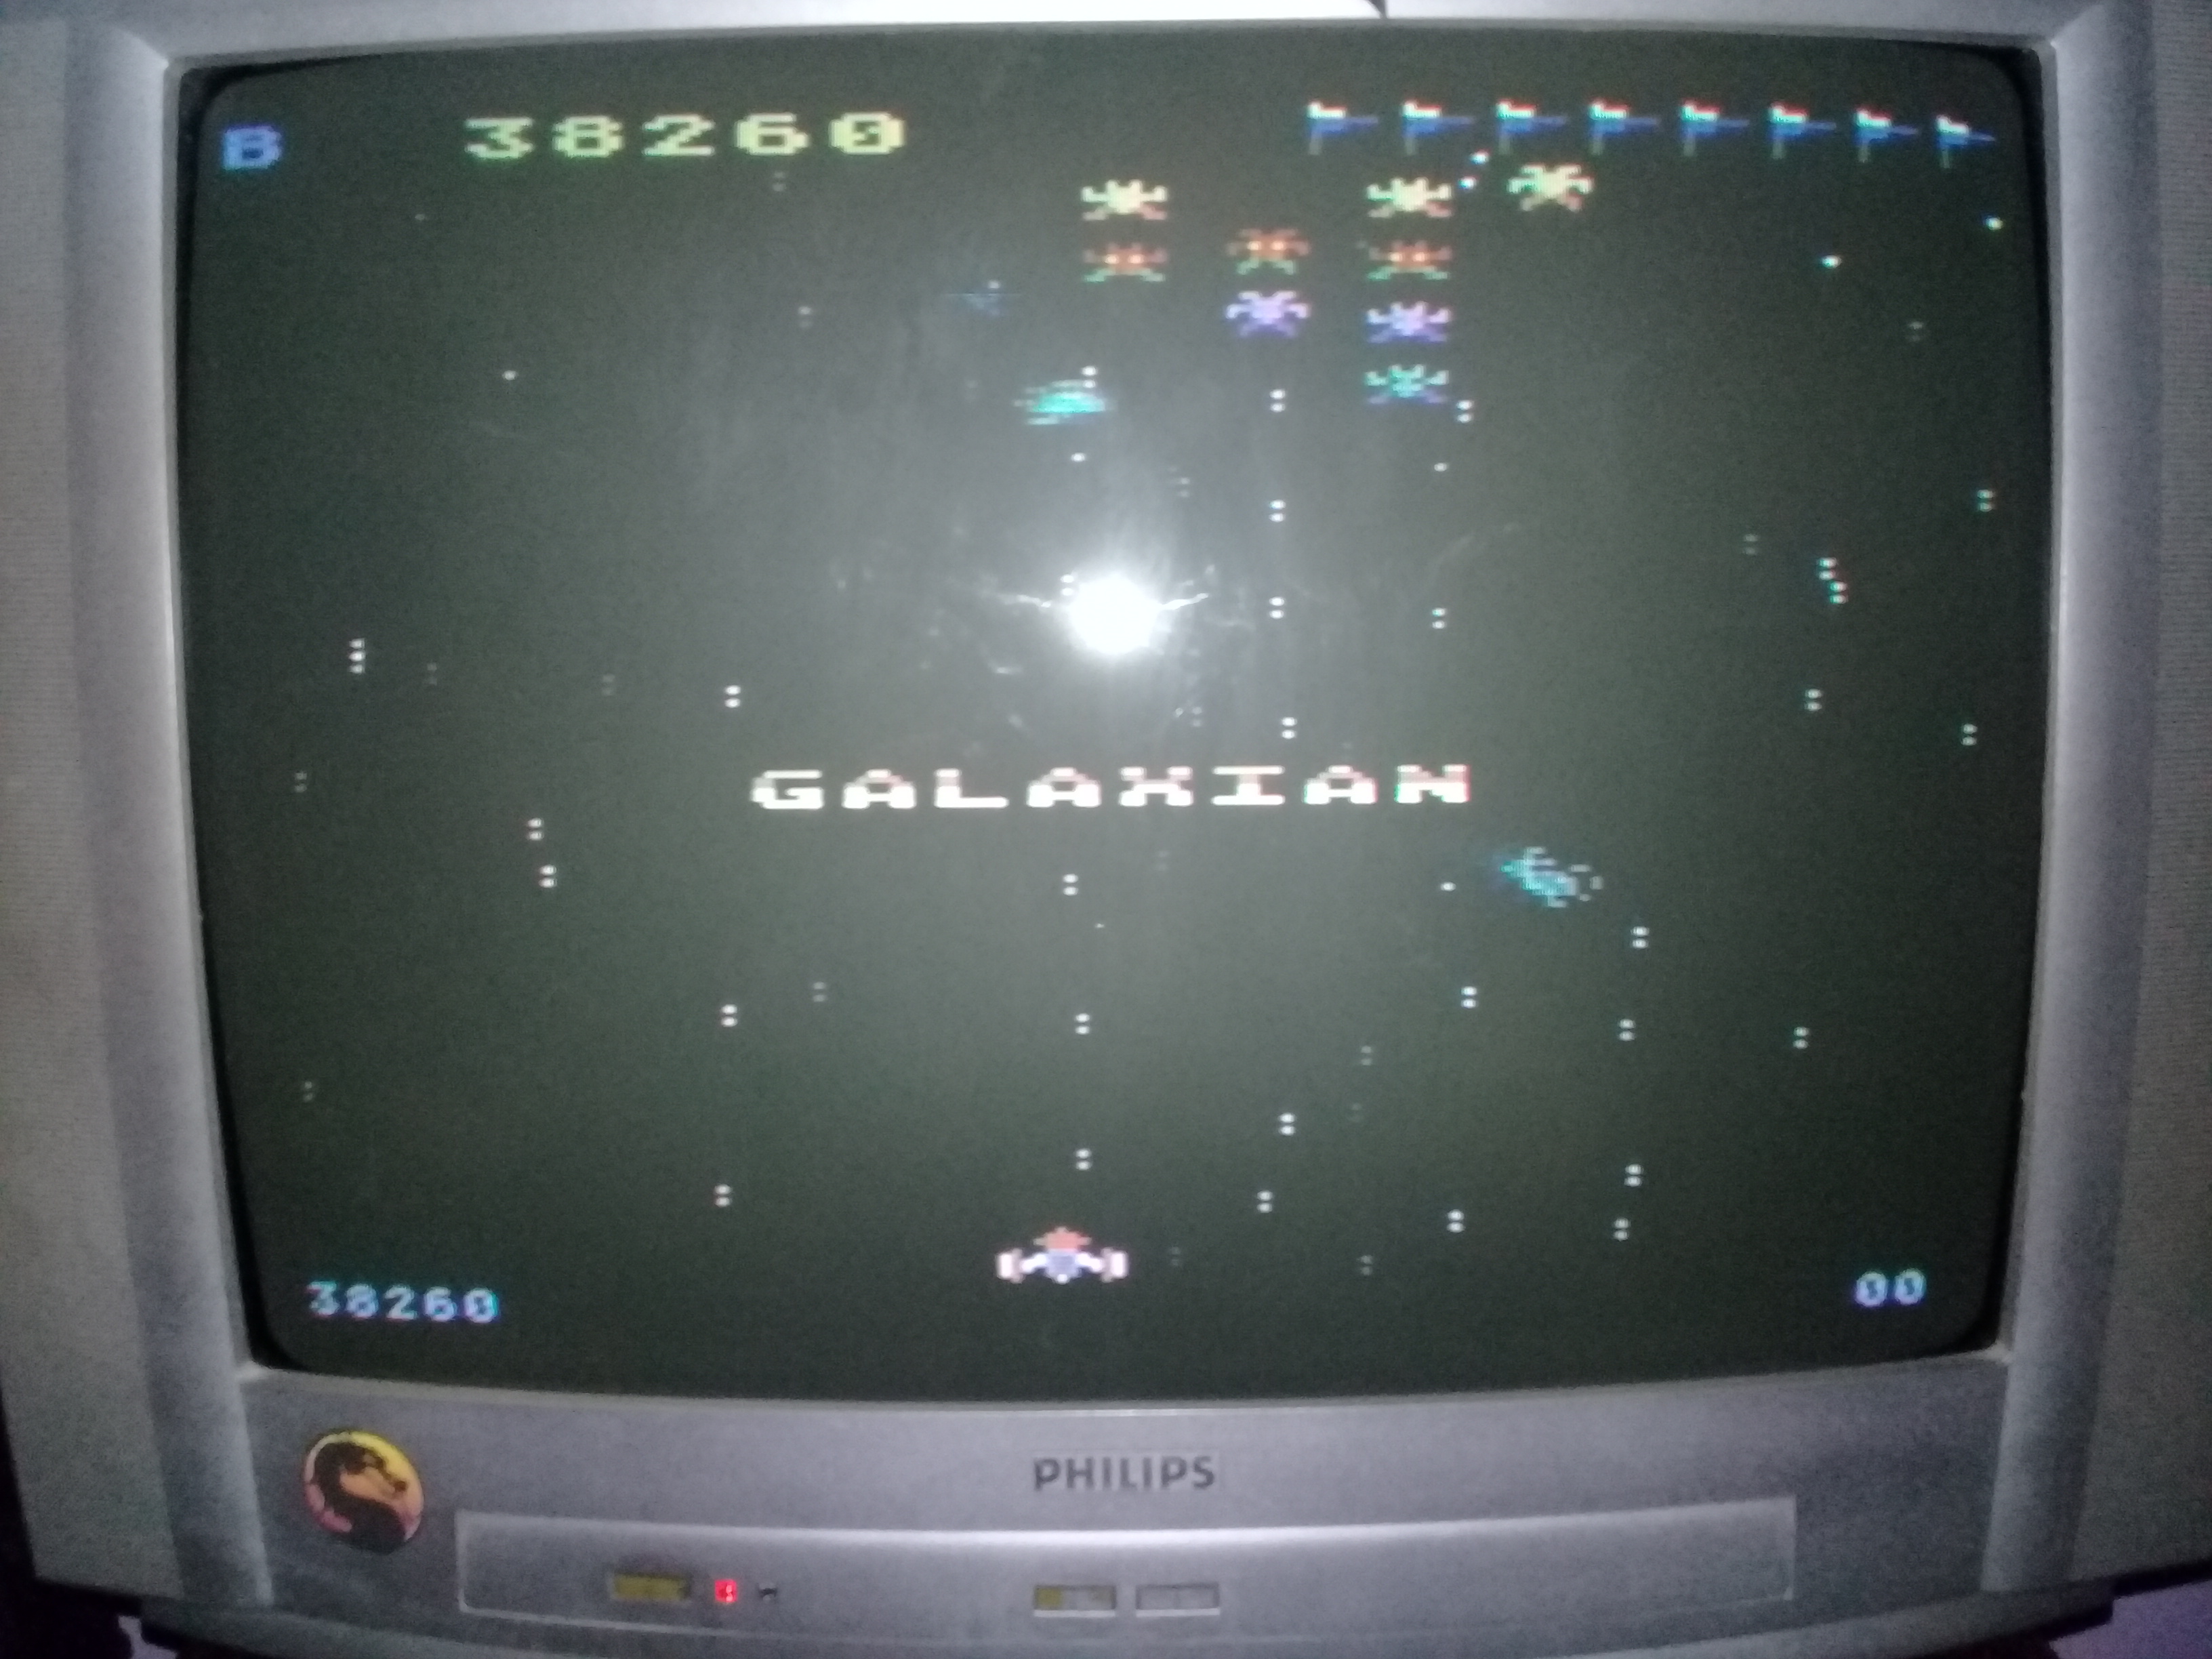 omargeddon: Galaxian [Difficulty: B] (Atari 400/800/XL/XE) 38,260 points on 2020-03-31 01:40:55